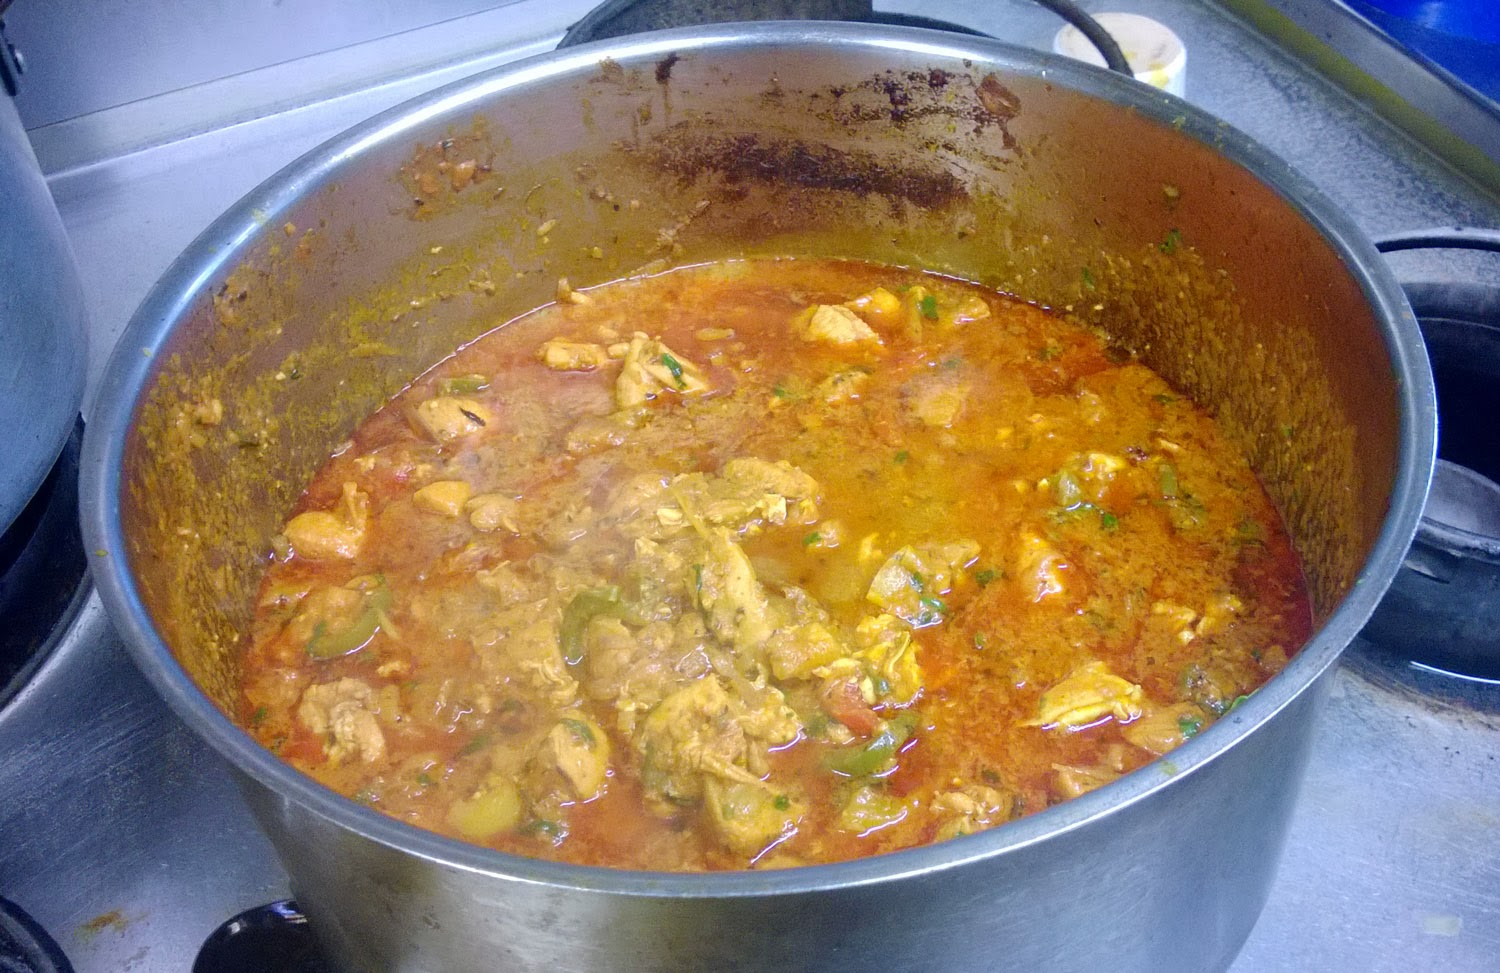 The Chicken Jalfrezi